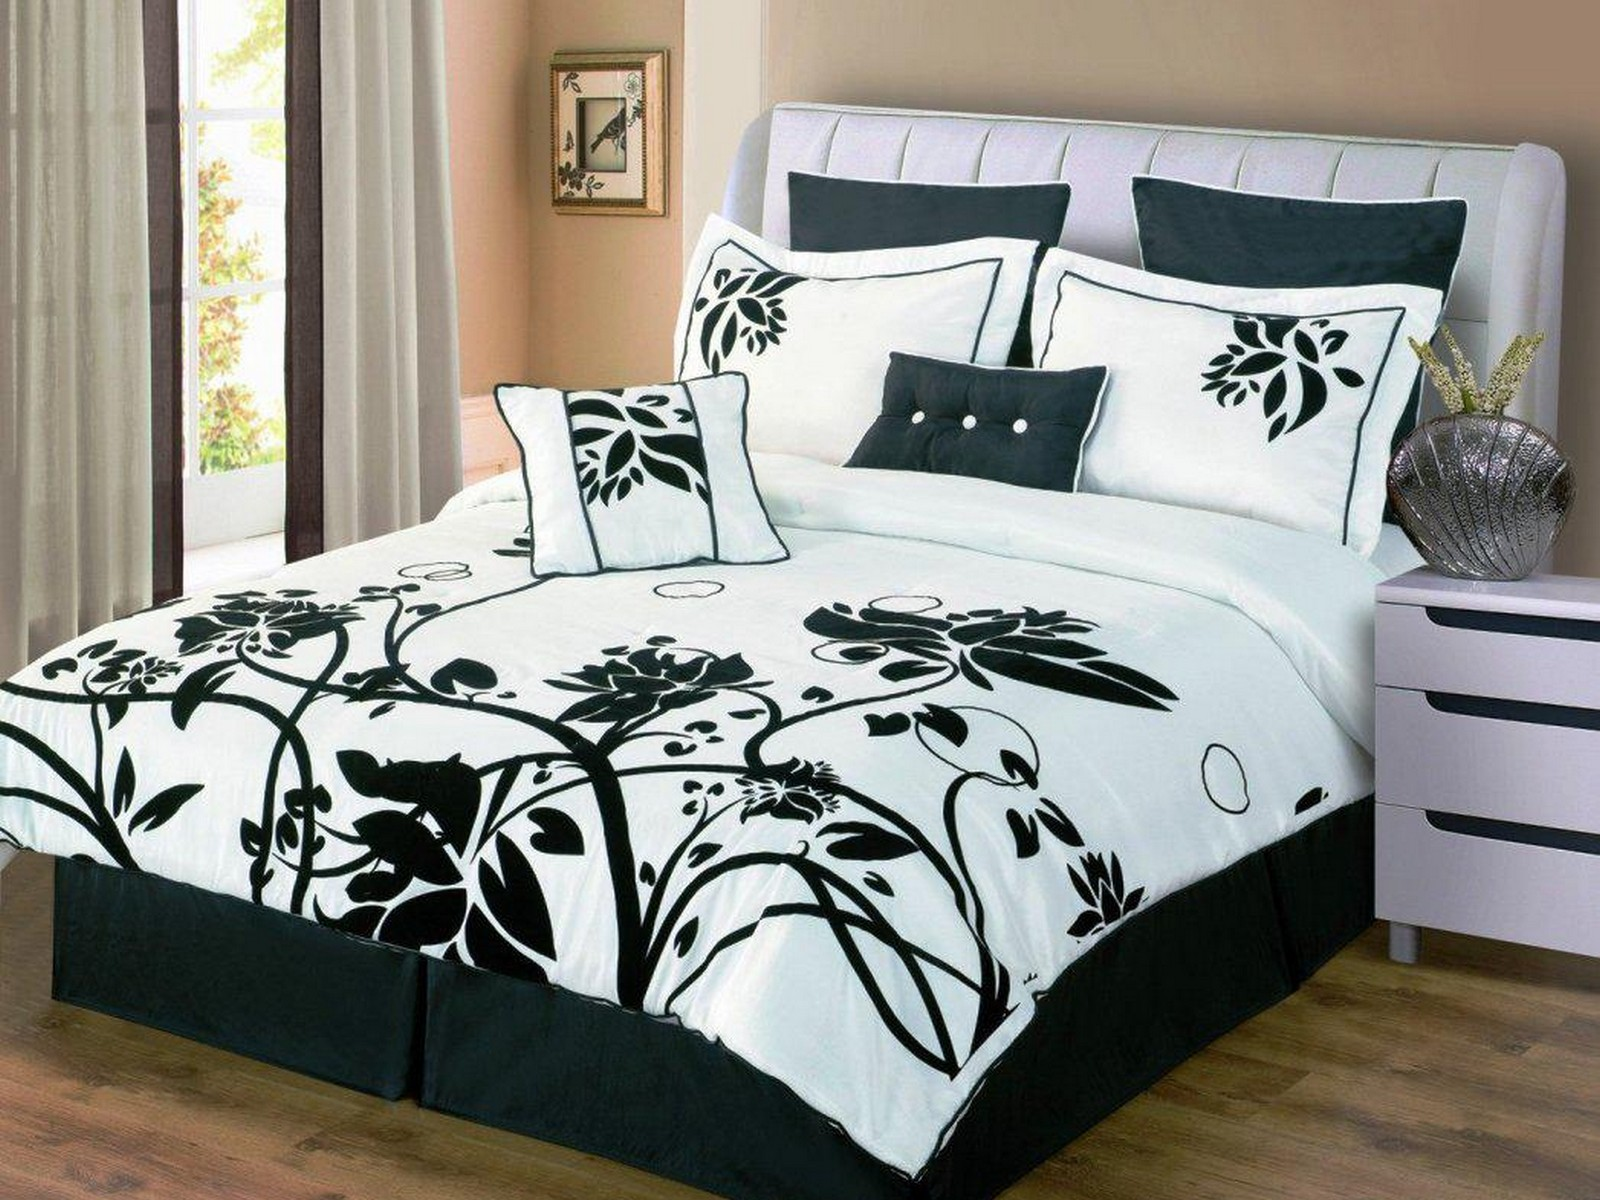 Exquisite queen size comforter sets for bedroom design with cheap queen size comforter sets